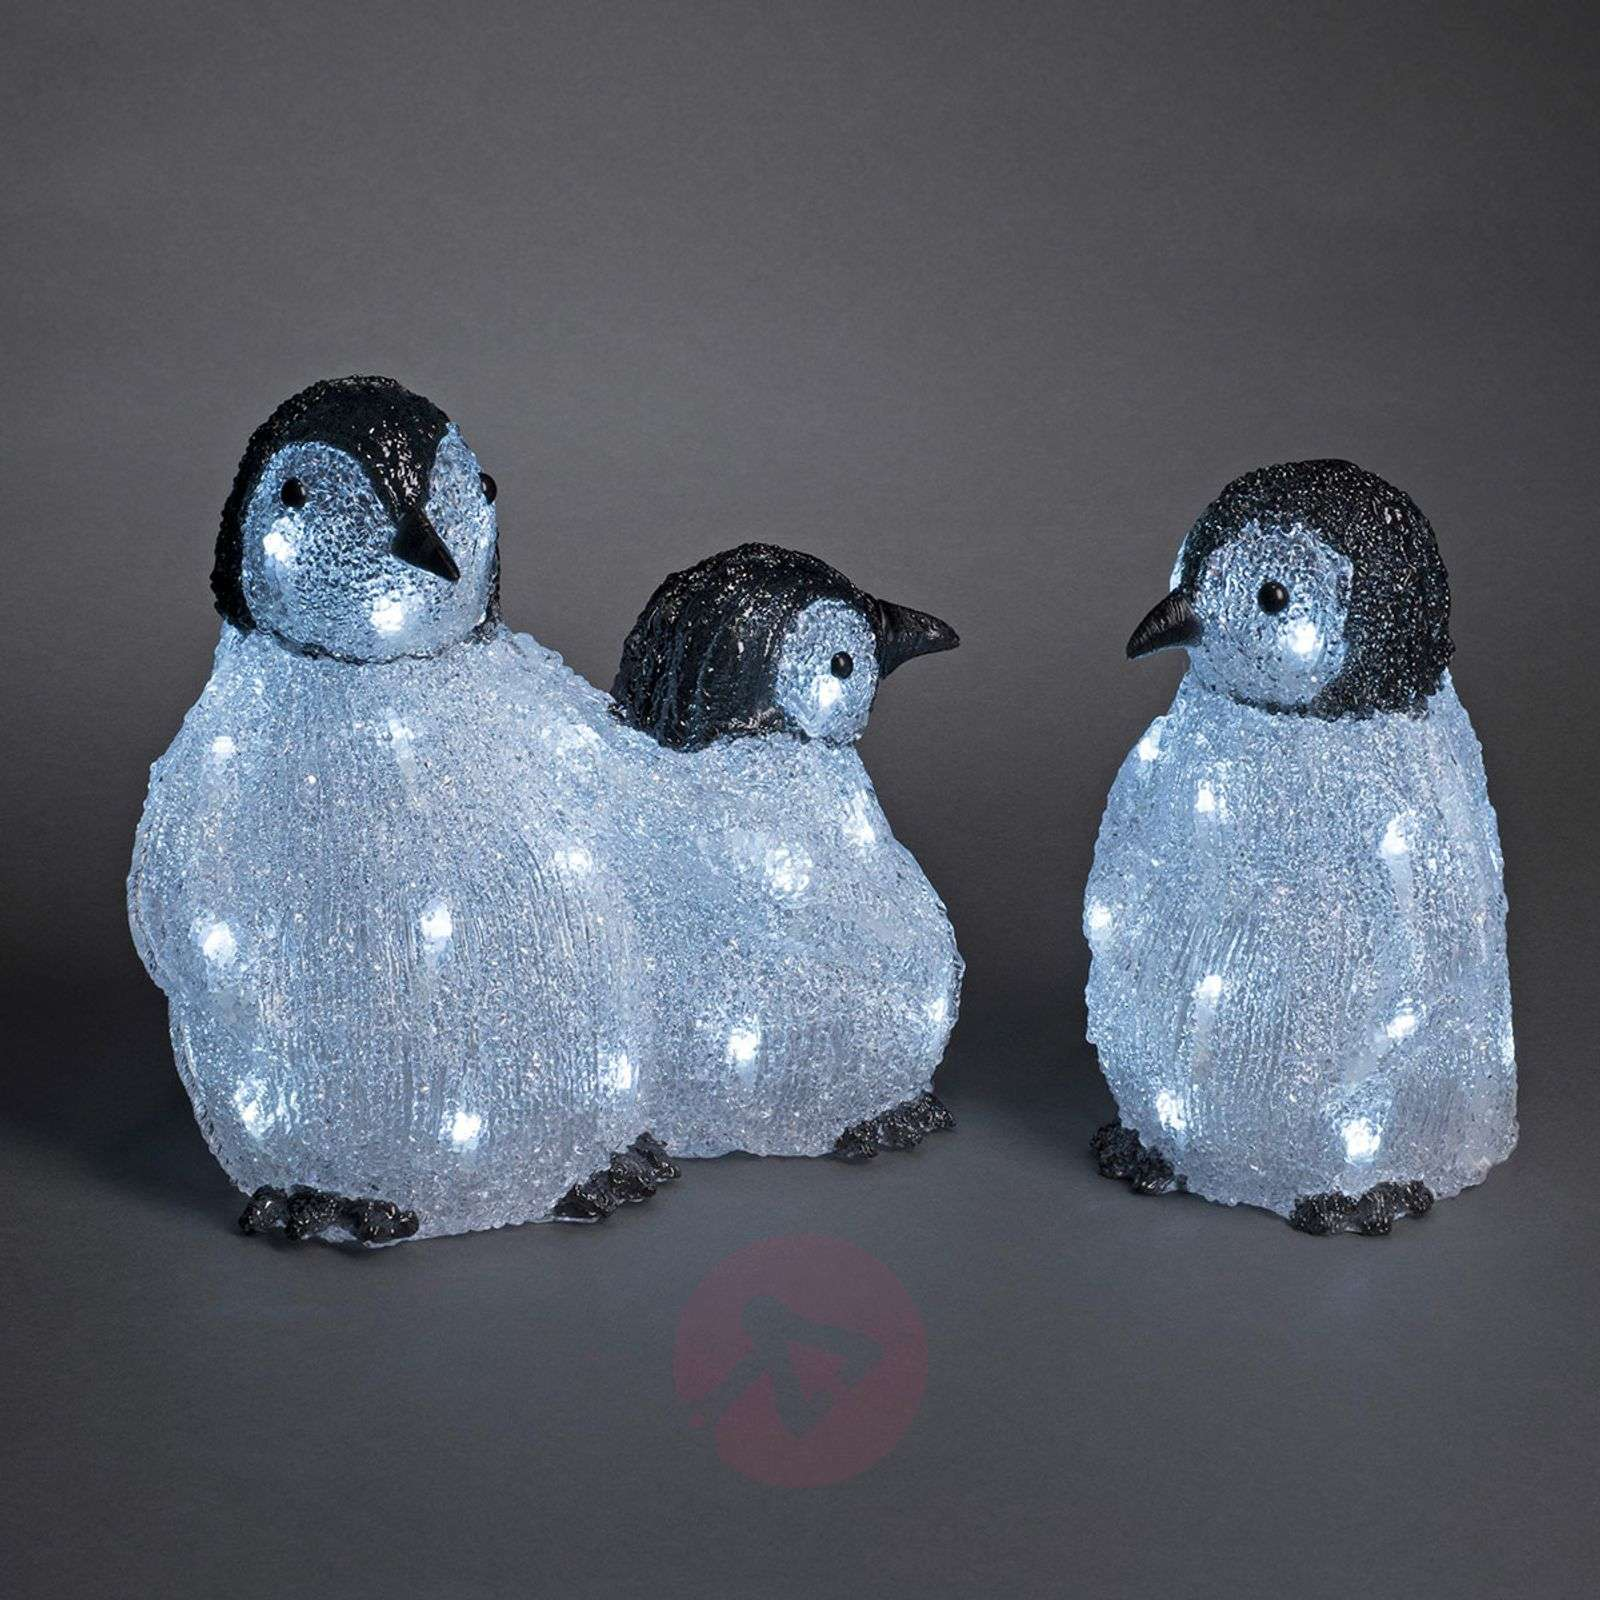 Set de 3 figurines LED acrylique Famille pingouin-5524872-01